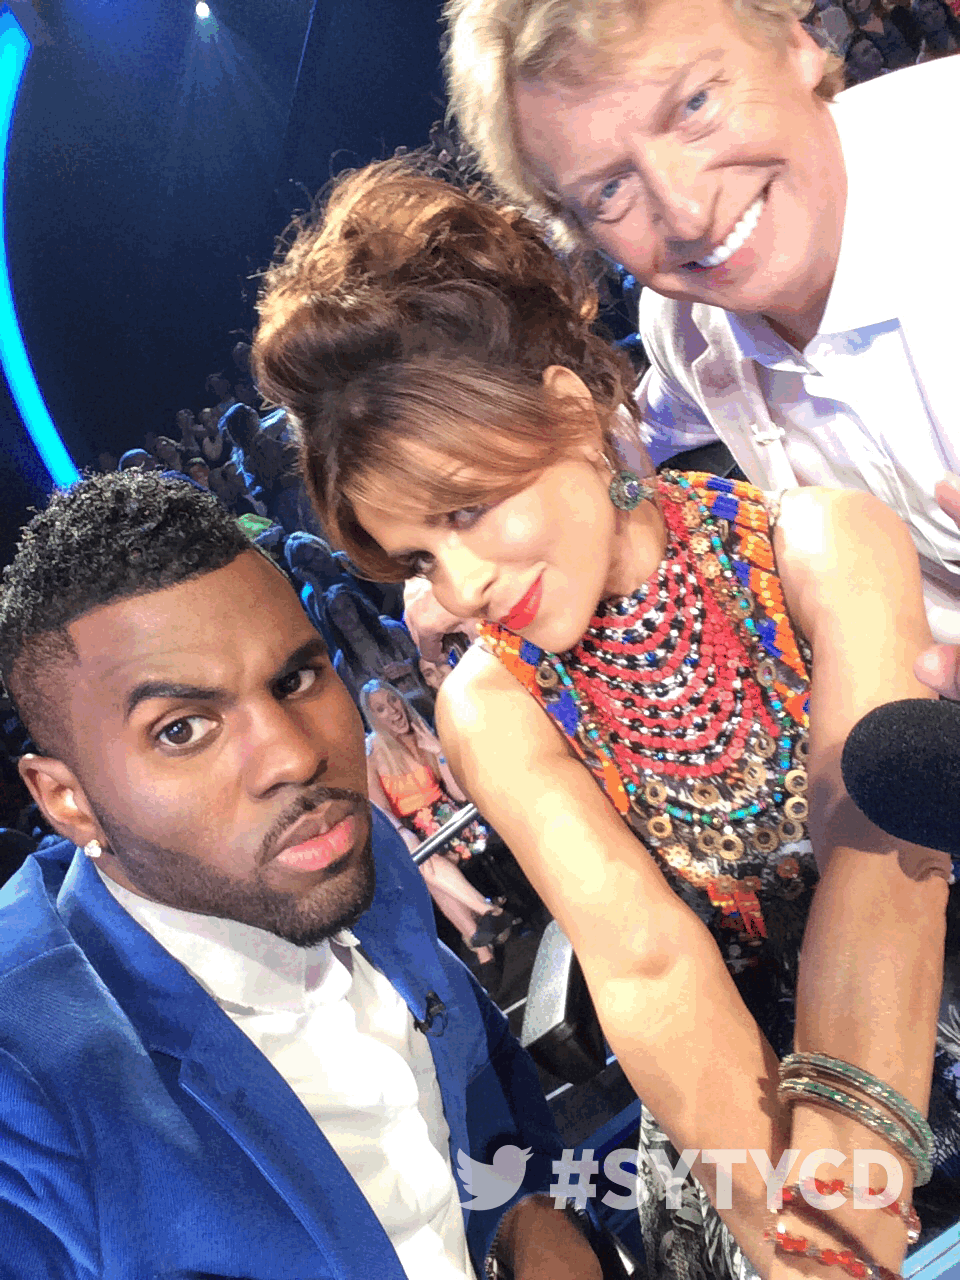 RT @DANCEonFOX: Look who it is! It's your judges @jasonderulo, @PaulaAbdul, and @dizzyfeet looking flawless, as always! #SYTYCD http://t.co…